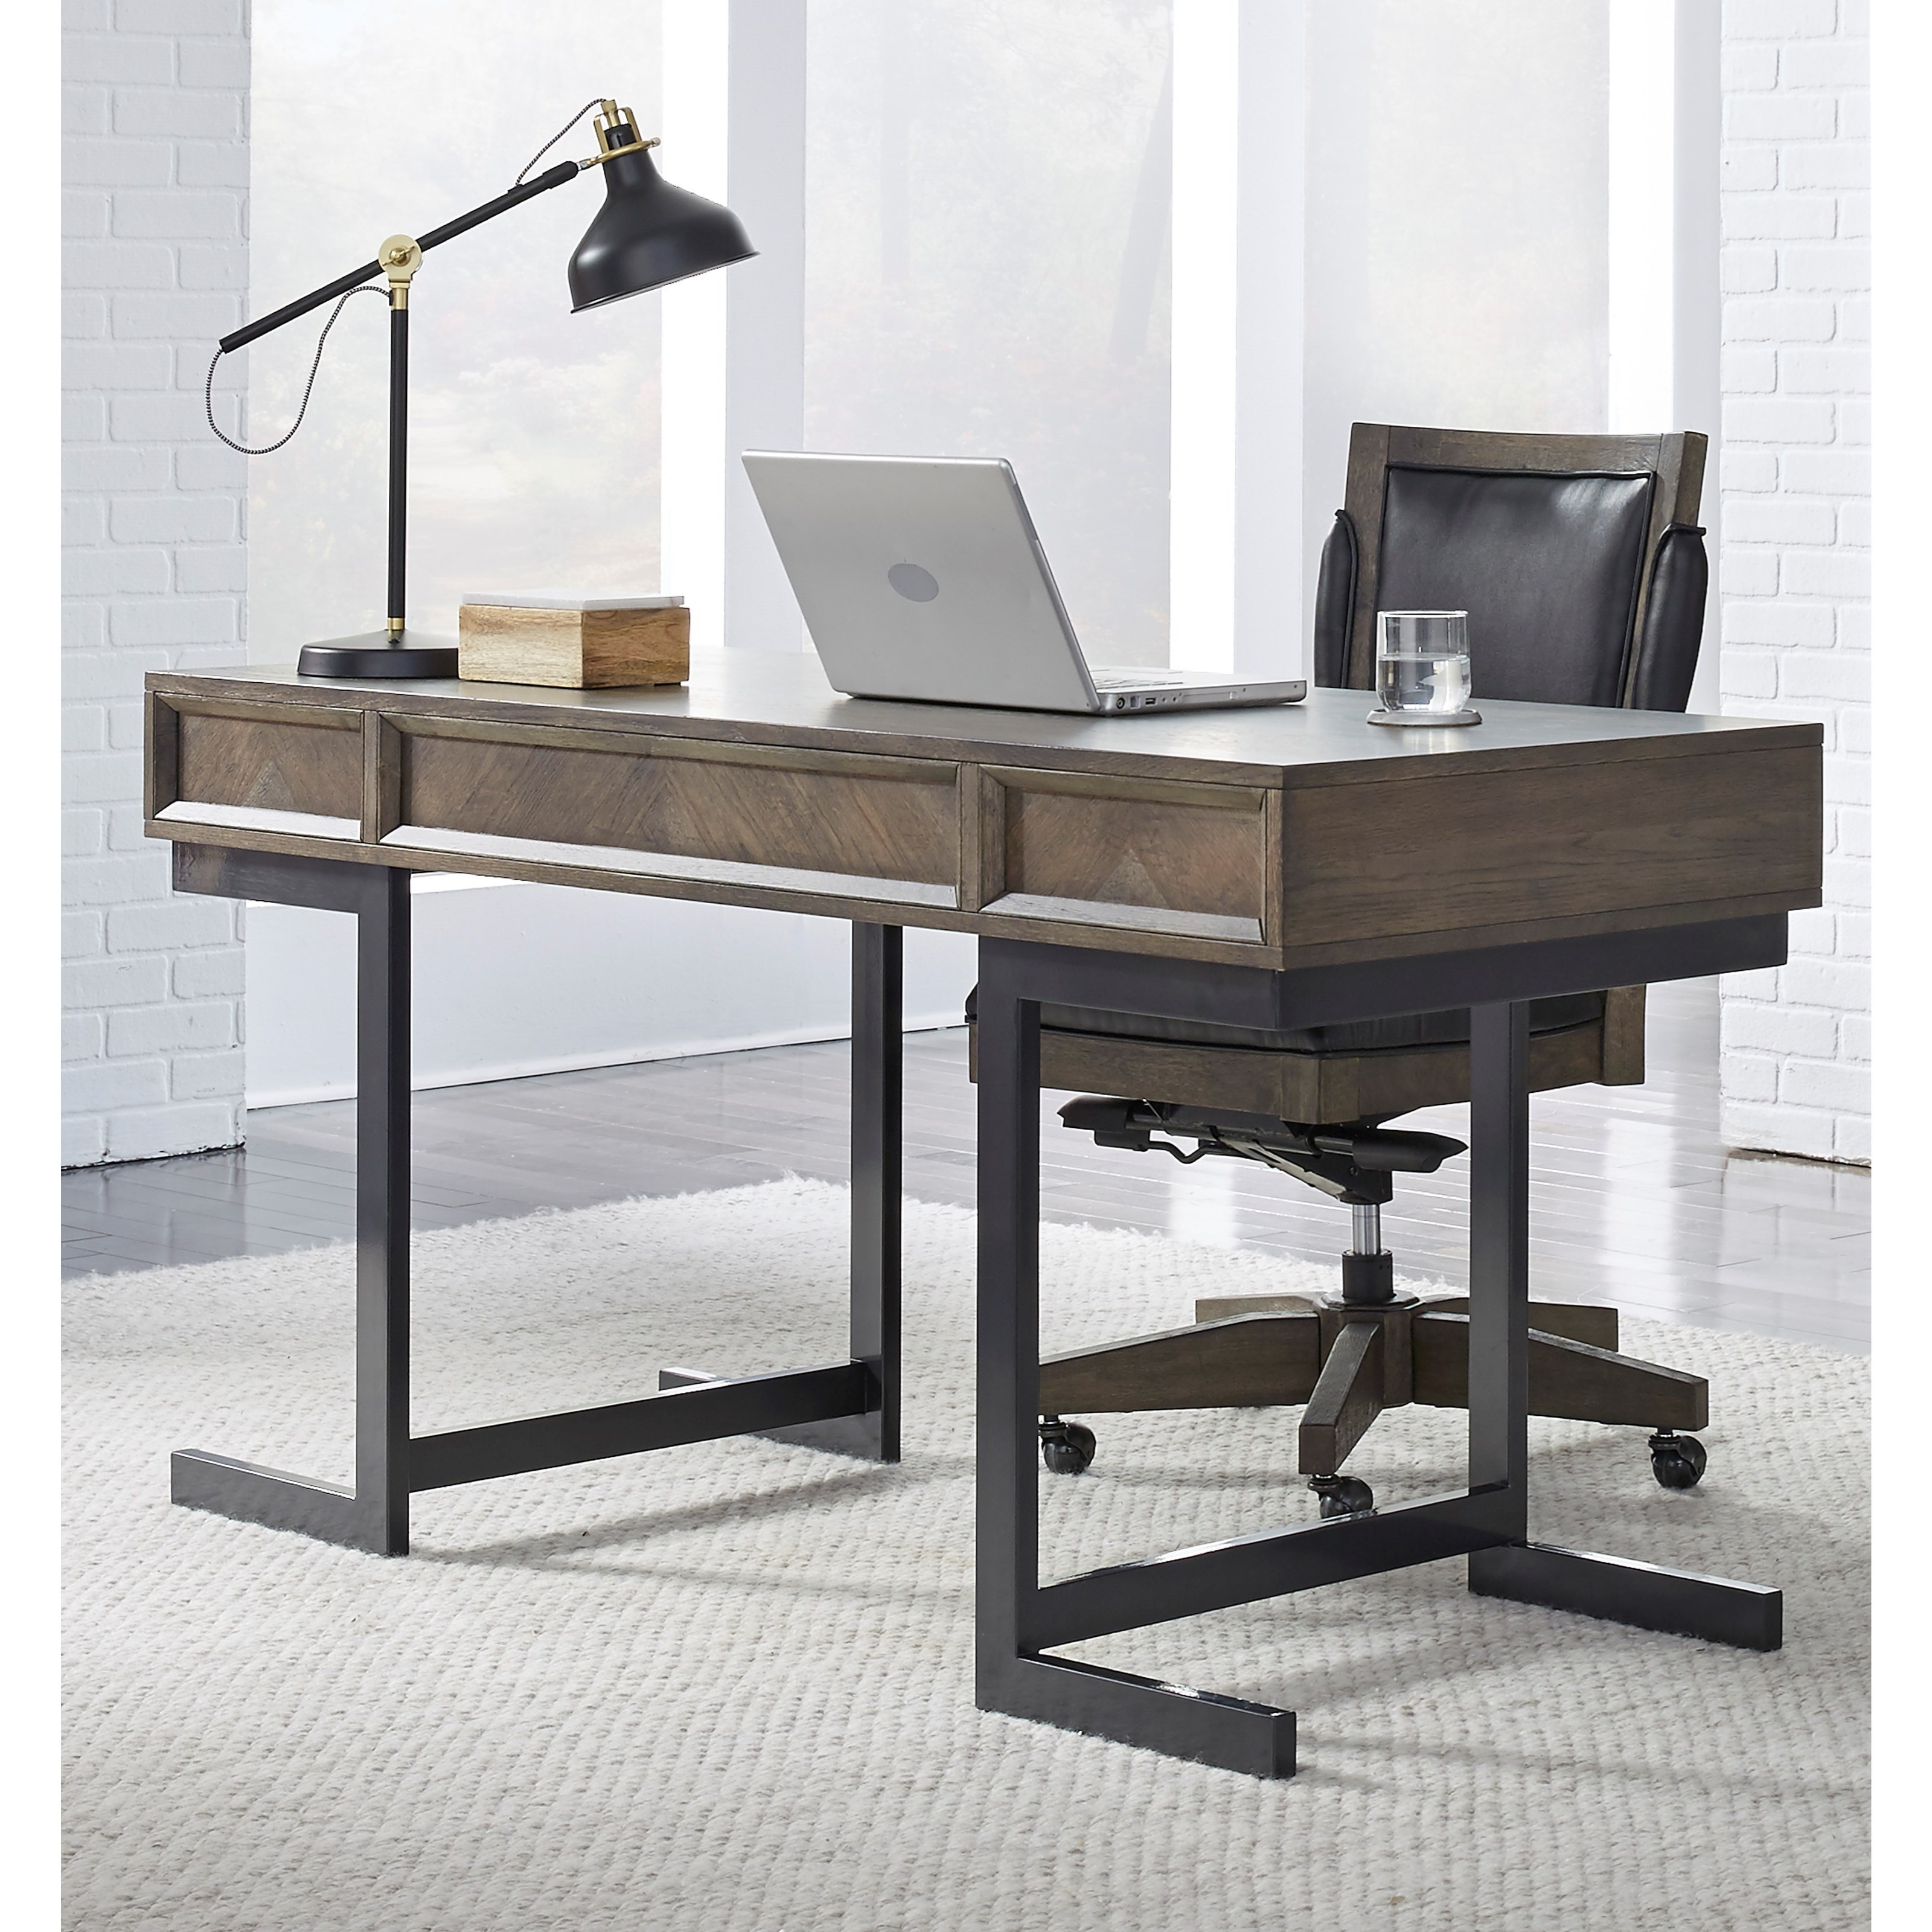 Harper Point Contemporary Desk by Aspenhome at Walker's Furniture